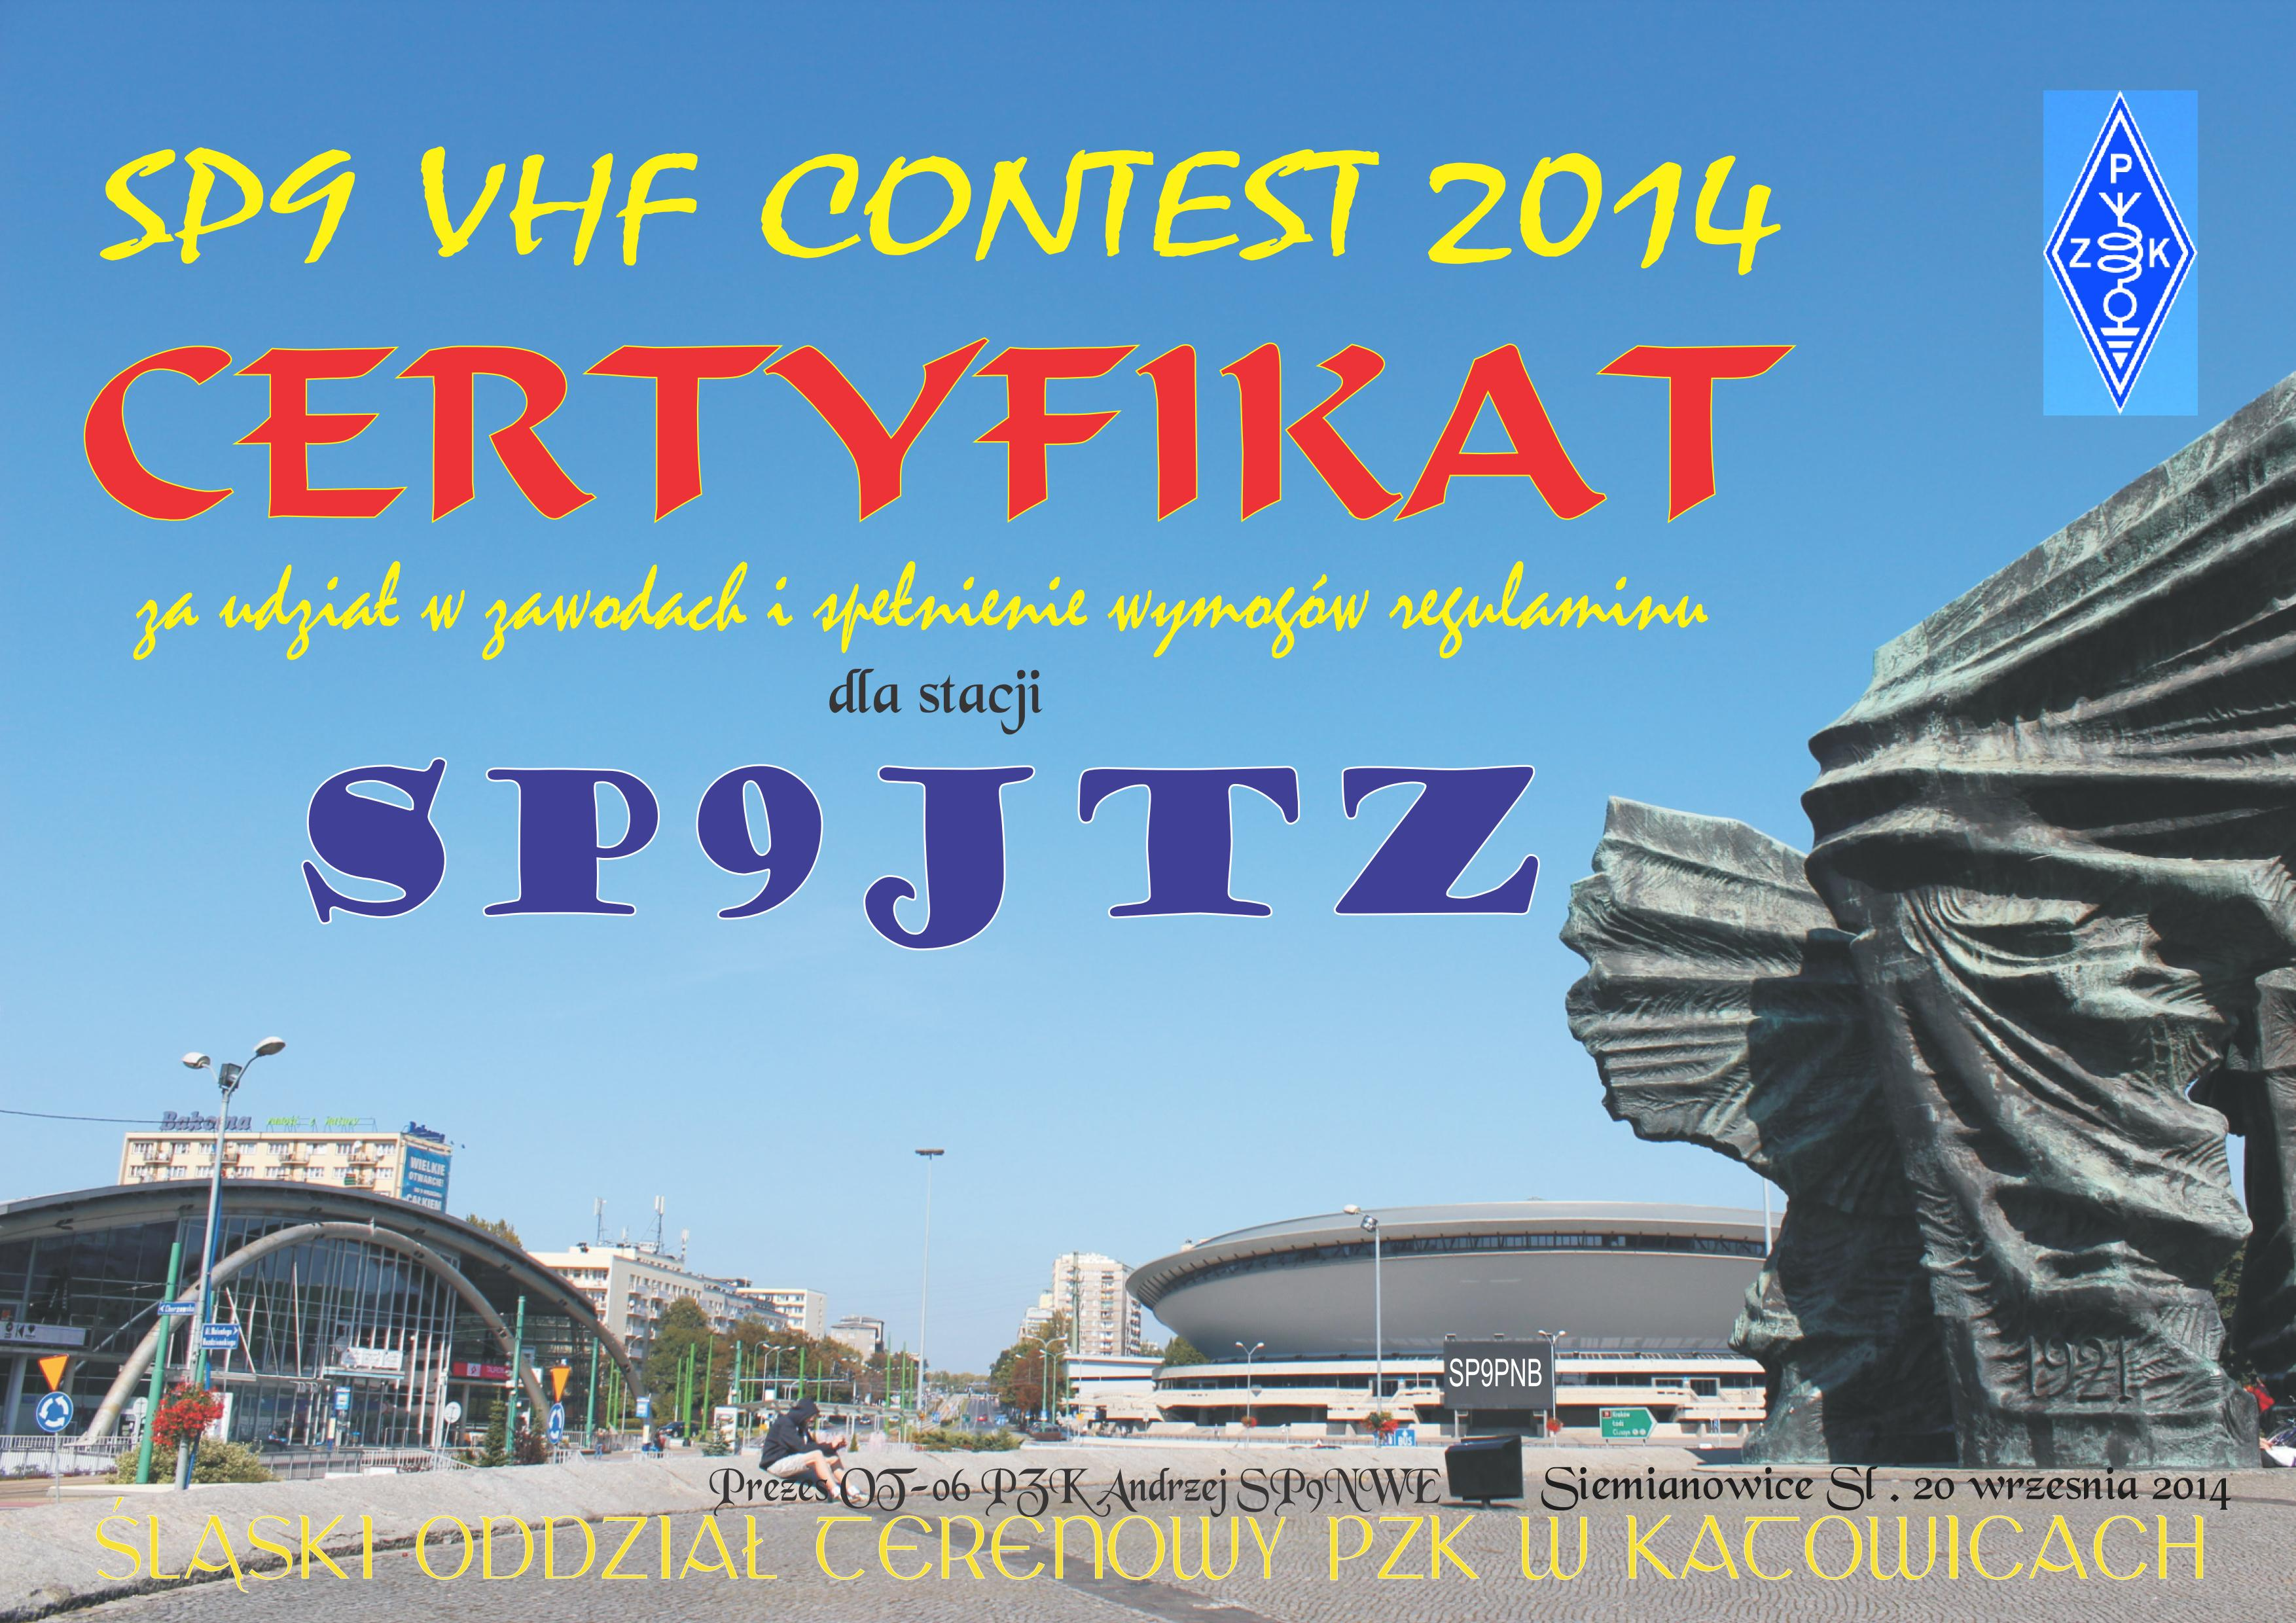 SP9 VHF Contest2014